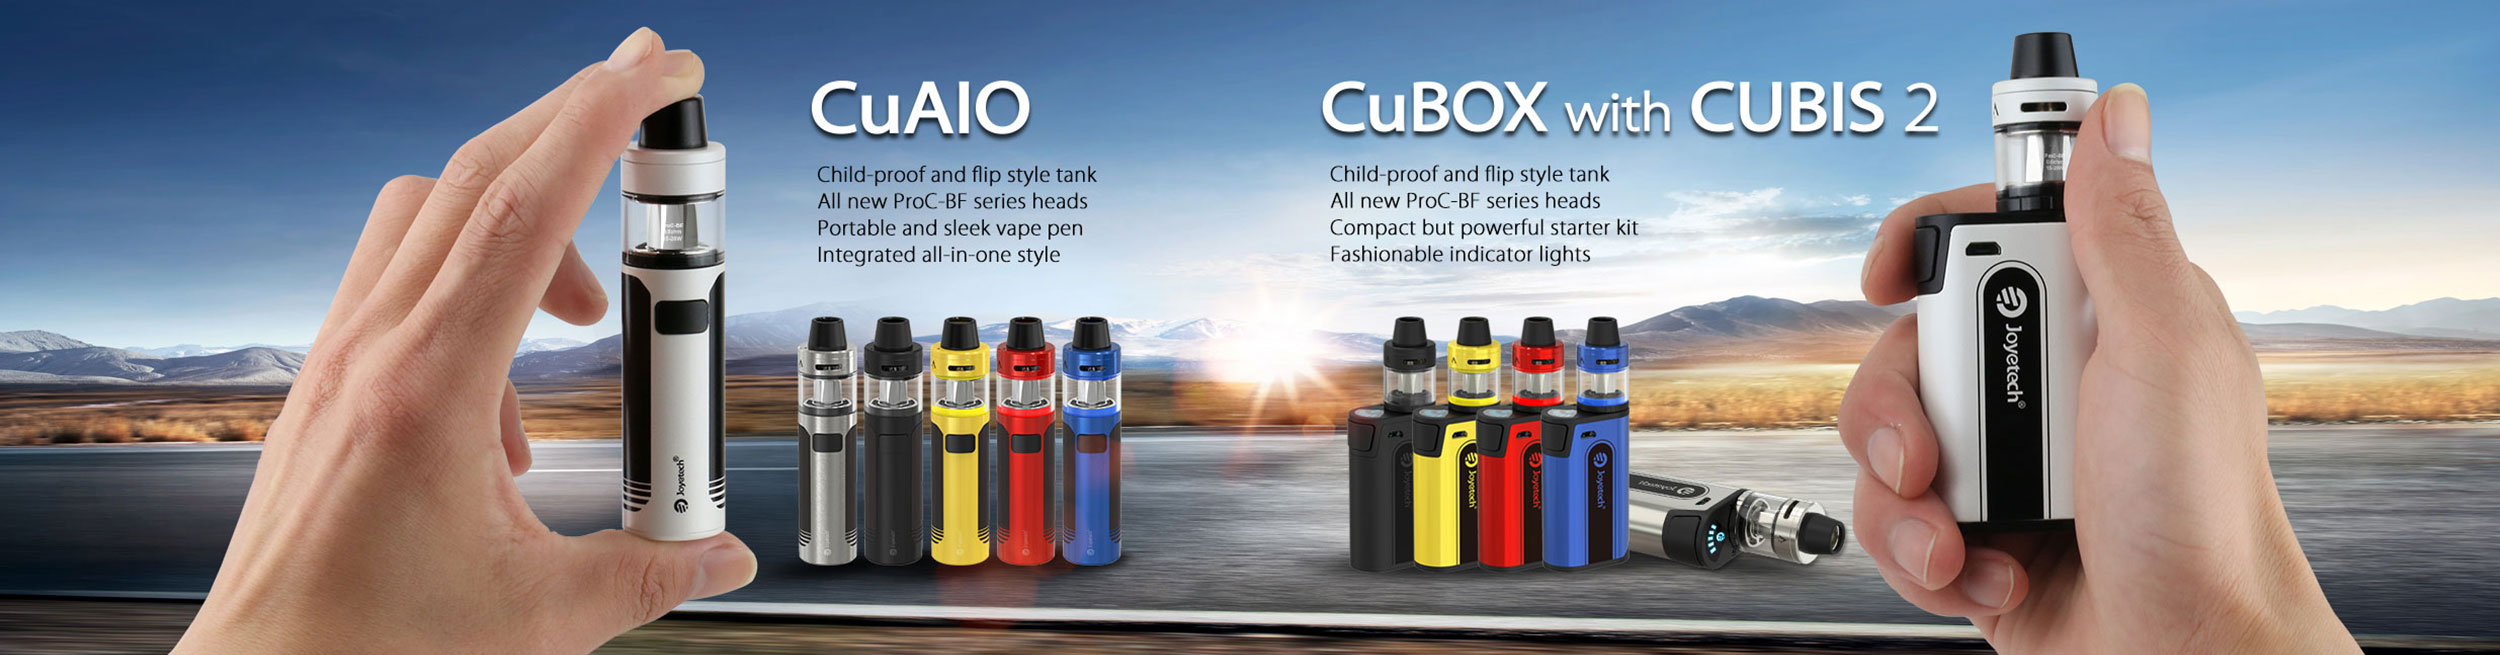 CuAIO and CuBox electronic cigarette